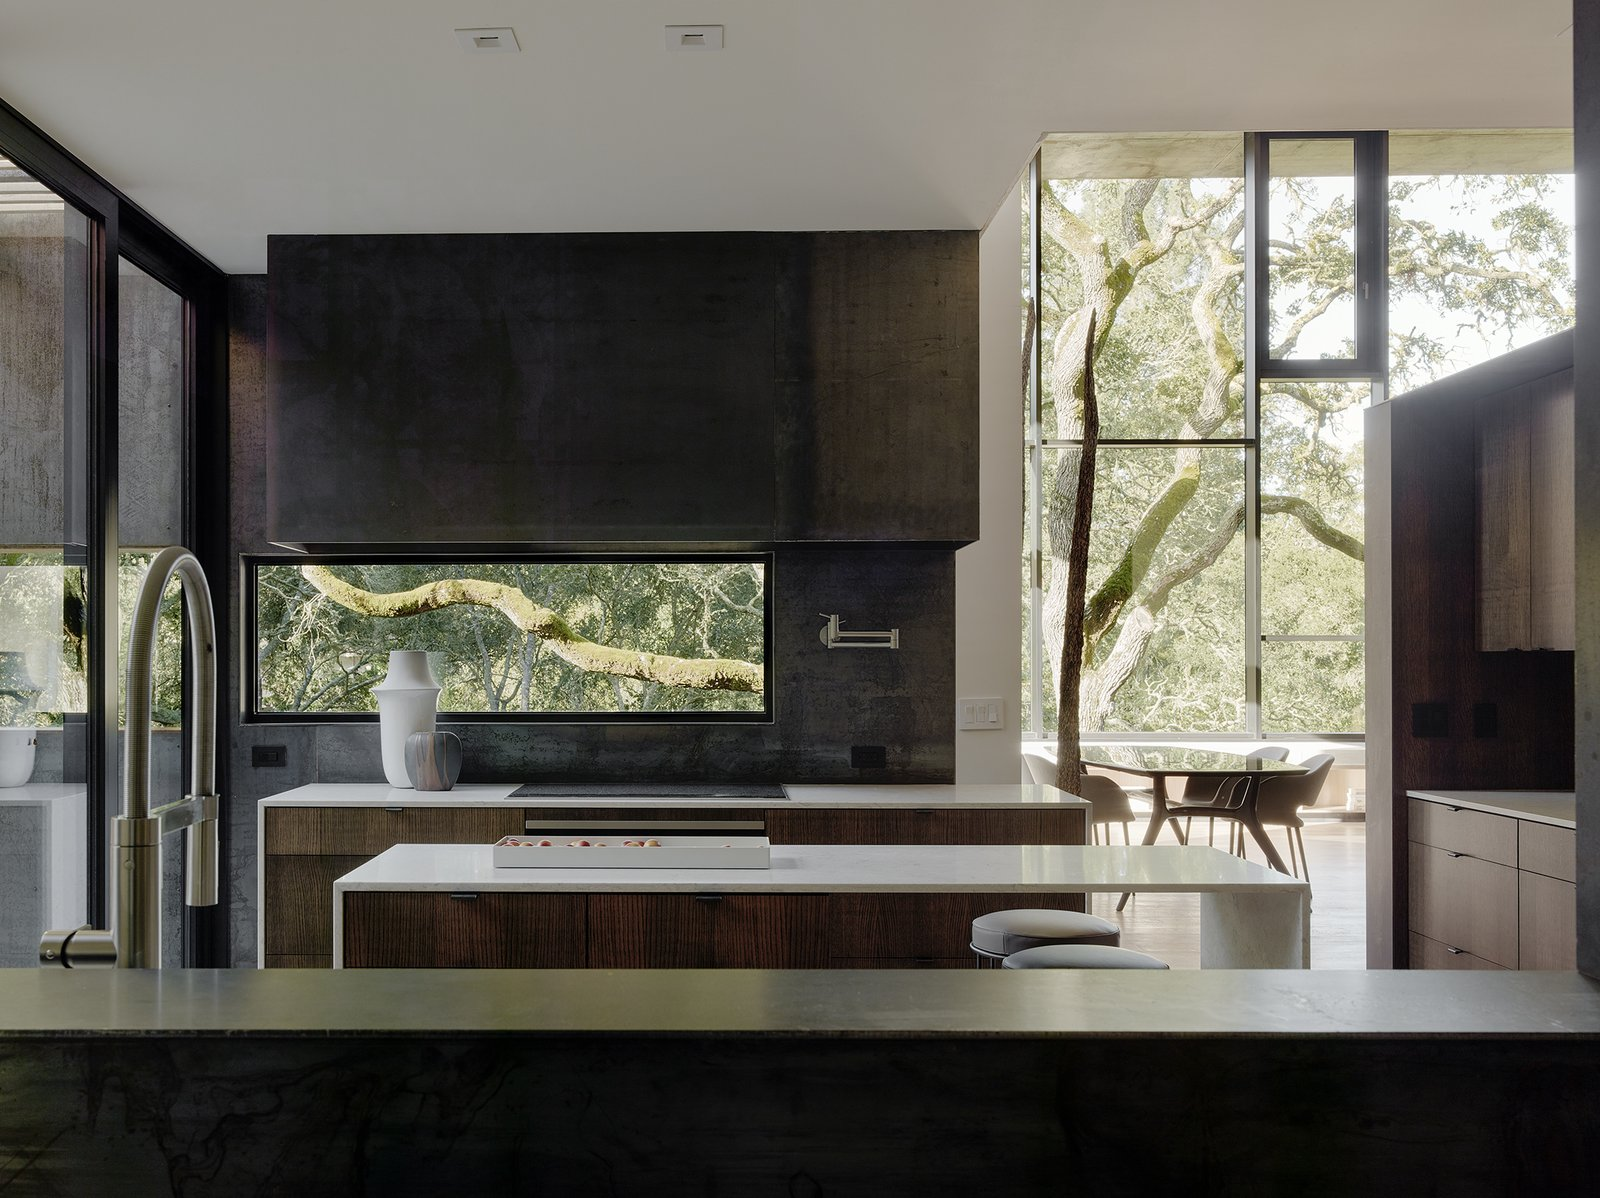 In the kitchen, bar stools by Living Divani pull up to an island with Bretonstone countertops; the faucet is by Blanco. Tagged: Kitchen and Wood Cabinet. Nature Drove the Design of This Sculptural, Cor-Ten Steel House in Northern California - Photo 4 of 14